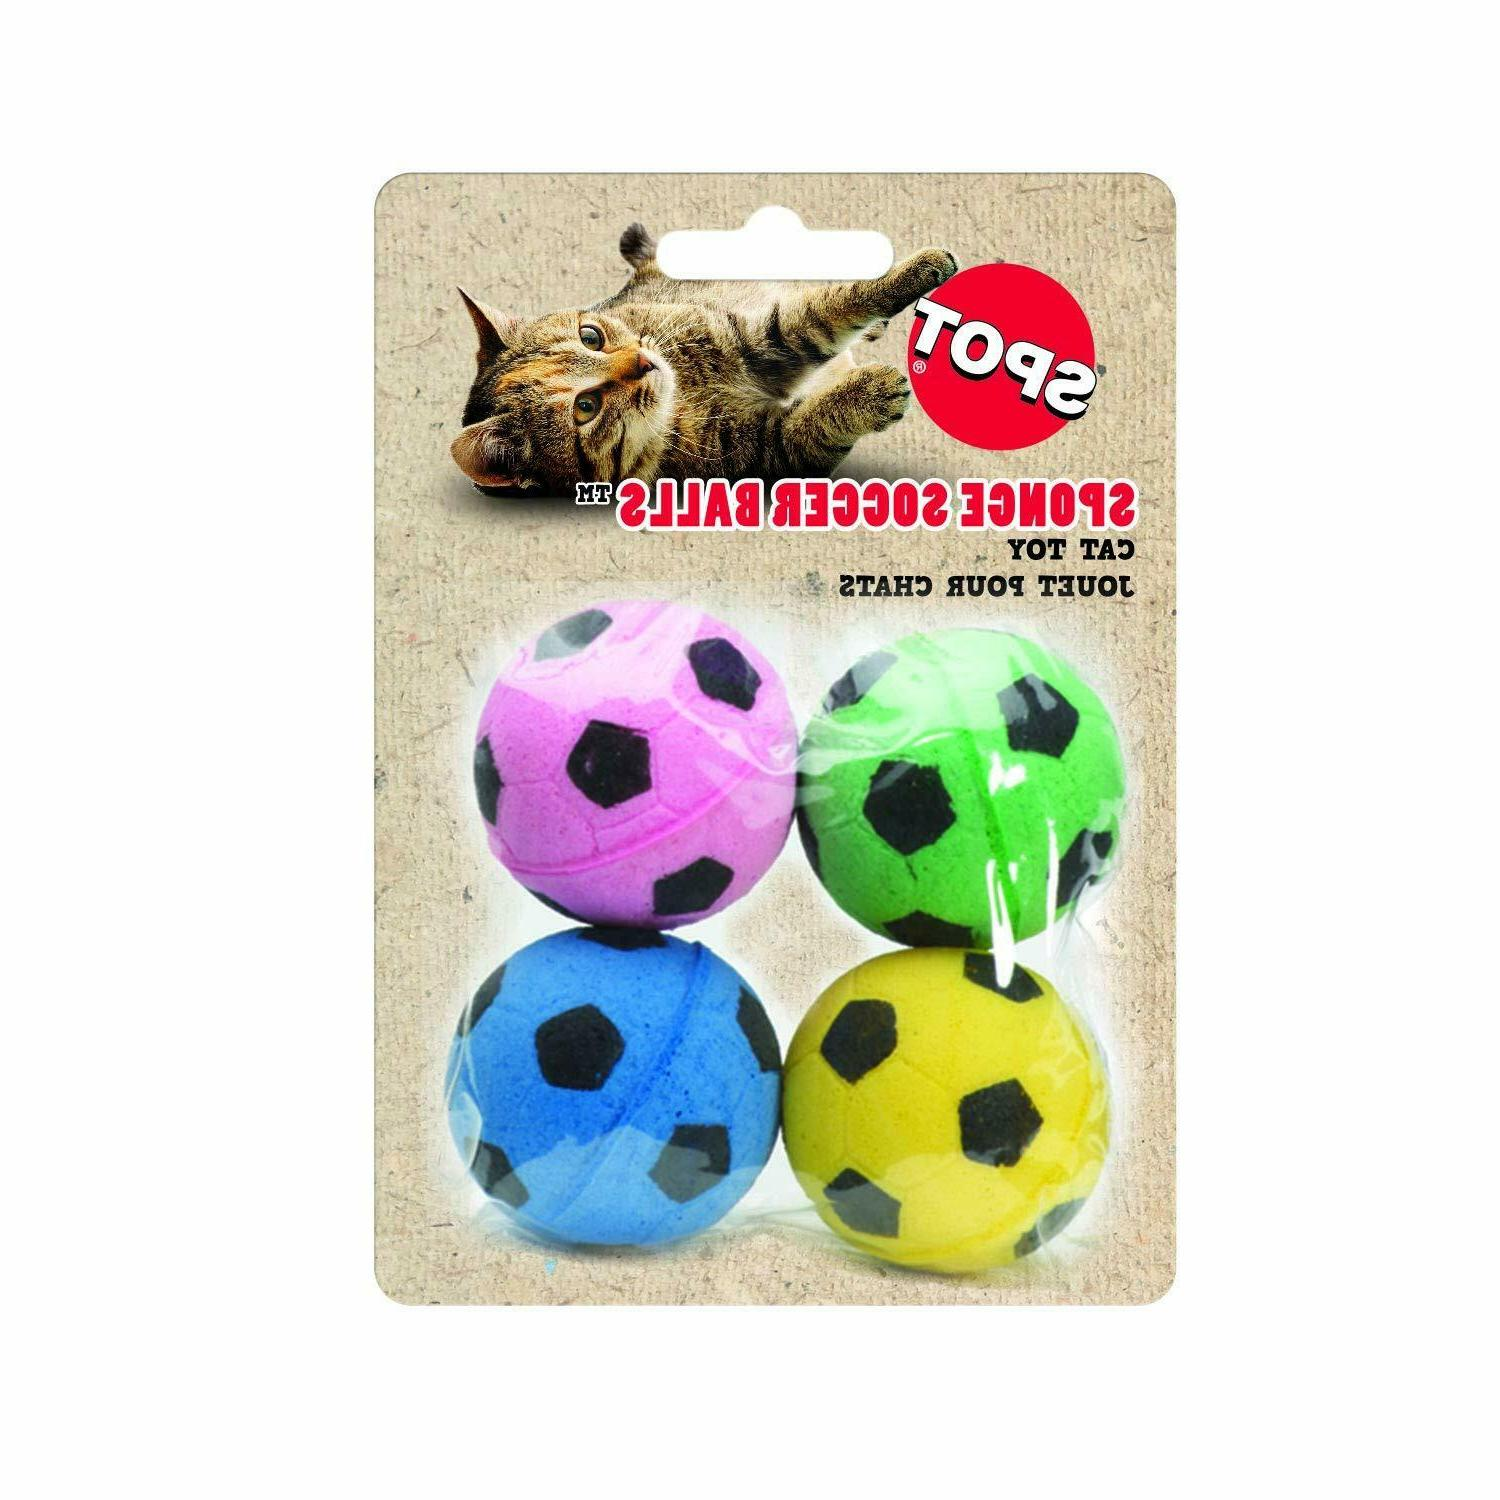 SPOT ETHICAL SPONGE SOCCER BALLS 4 PACK CAT TOY KITTEN. FREE